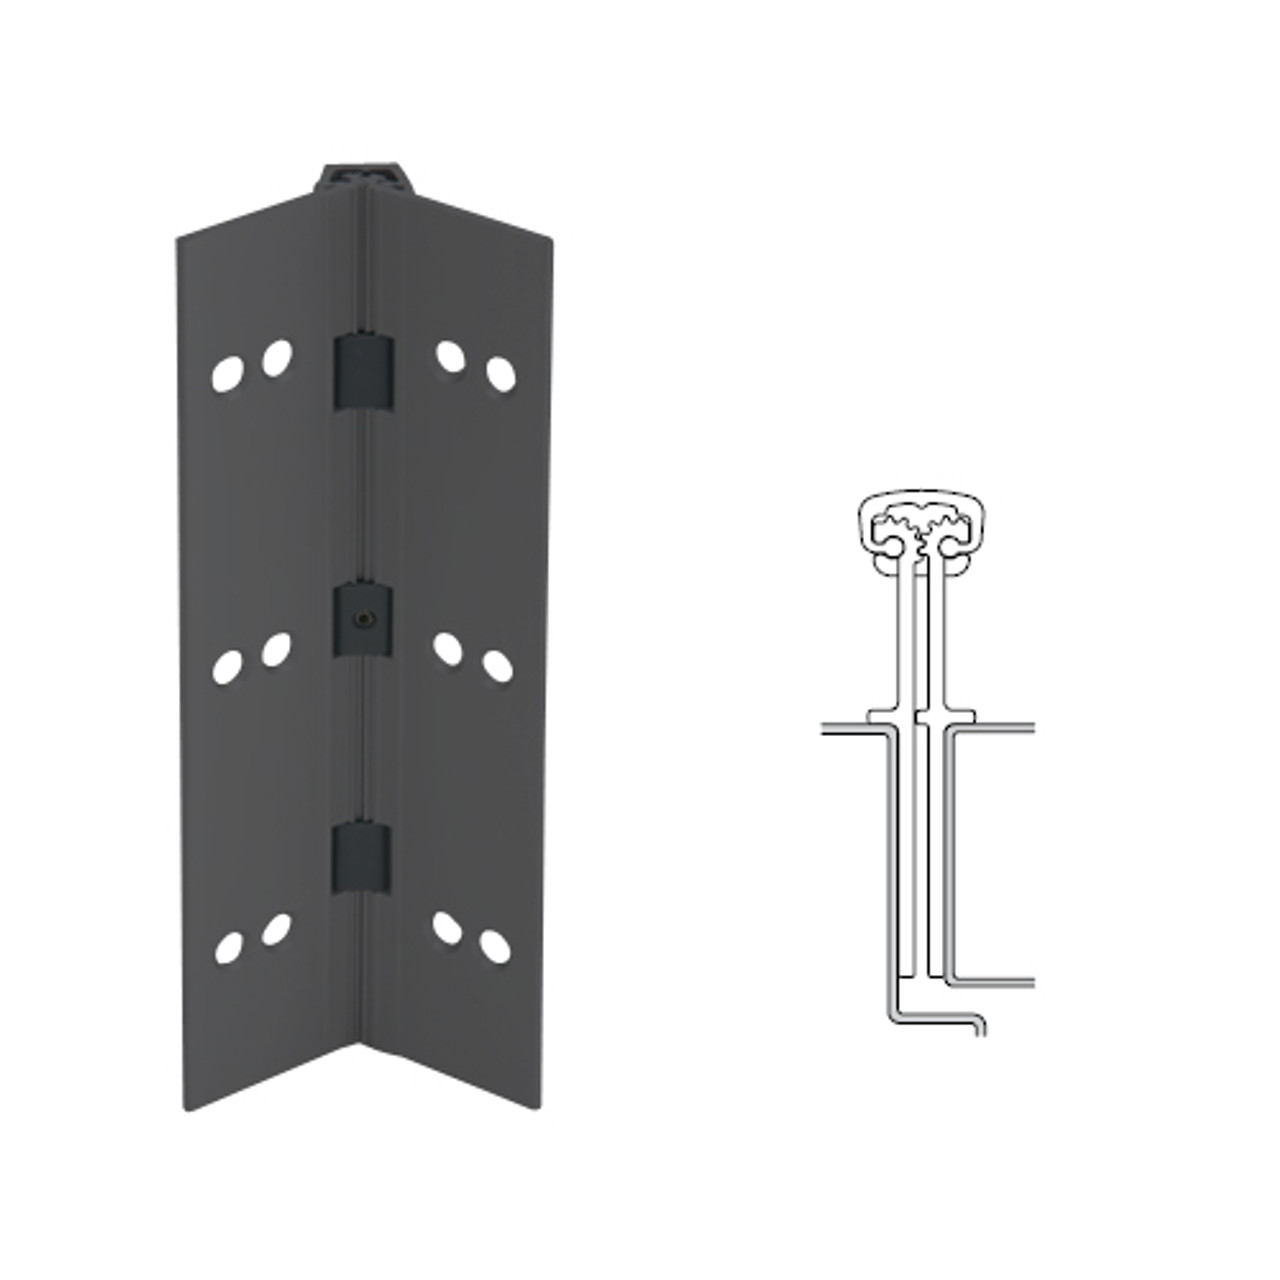 040XY-315AN-120-TF IVES Full Mortise Continuous Geared Hinges with Thread Forming Screws in Anodized Black